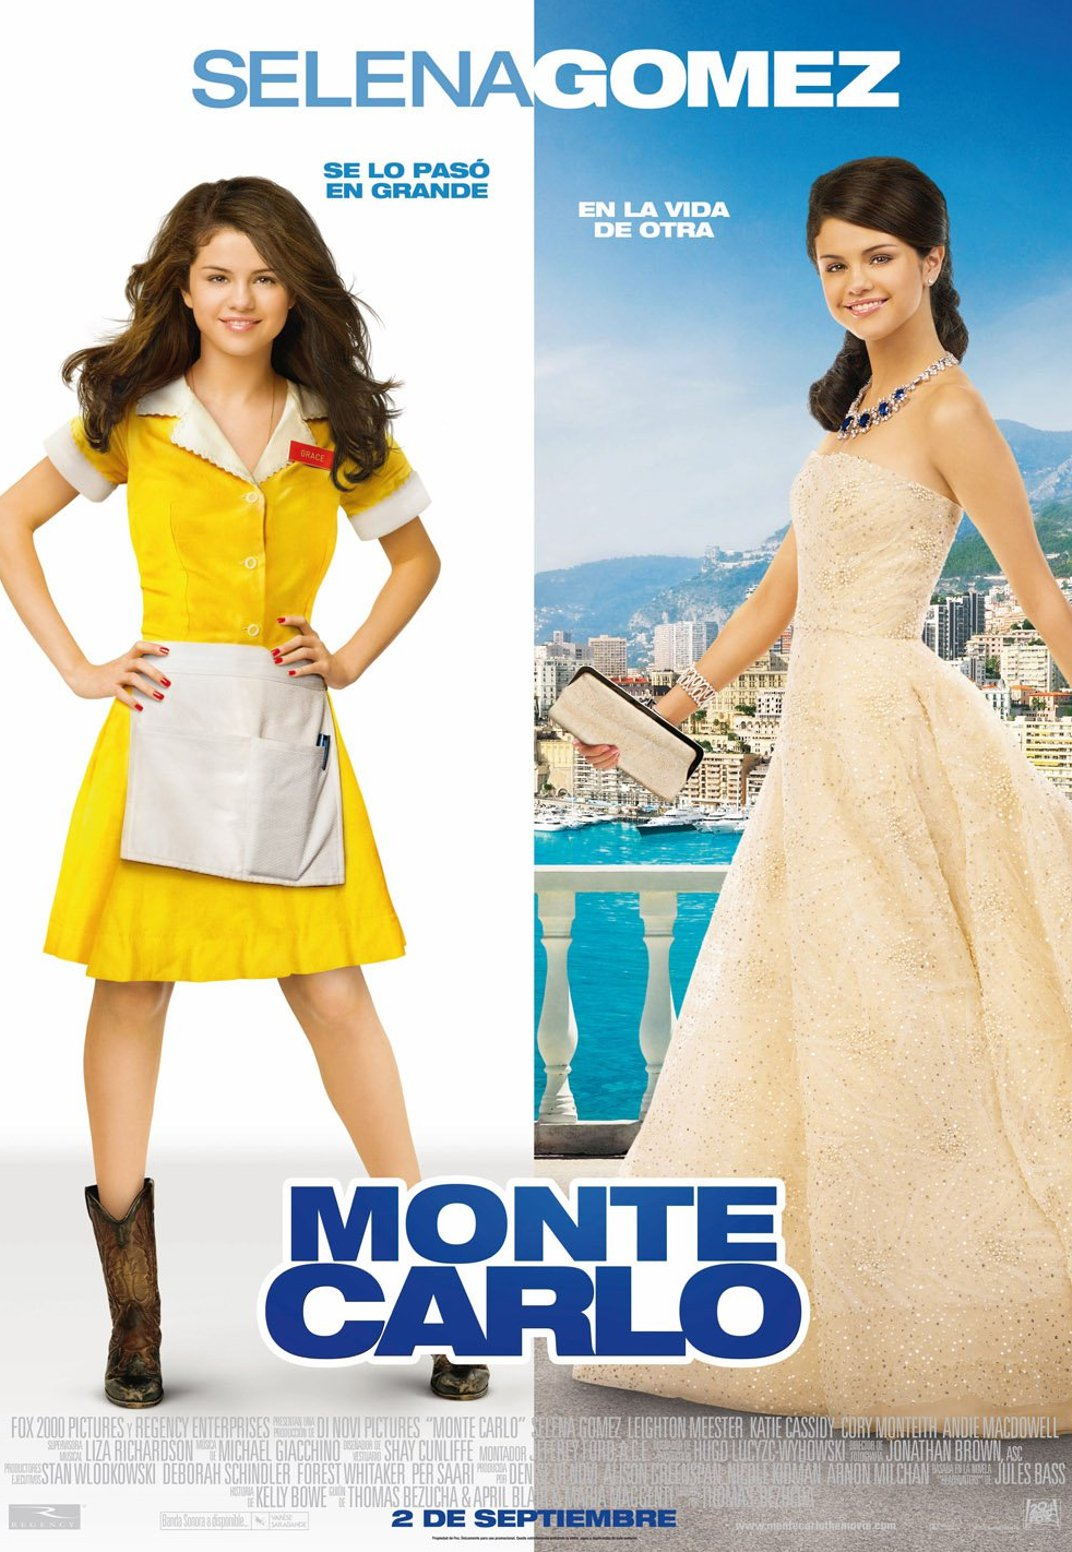 Monte Carlo Movie Cast Monte Carlo Movie